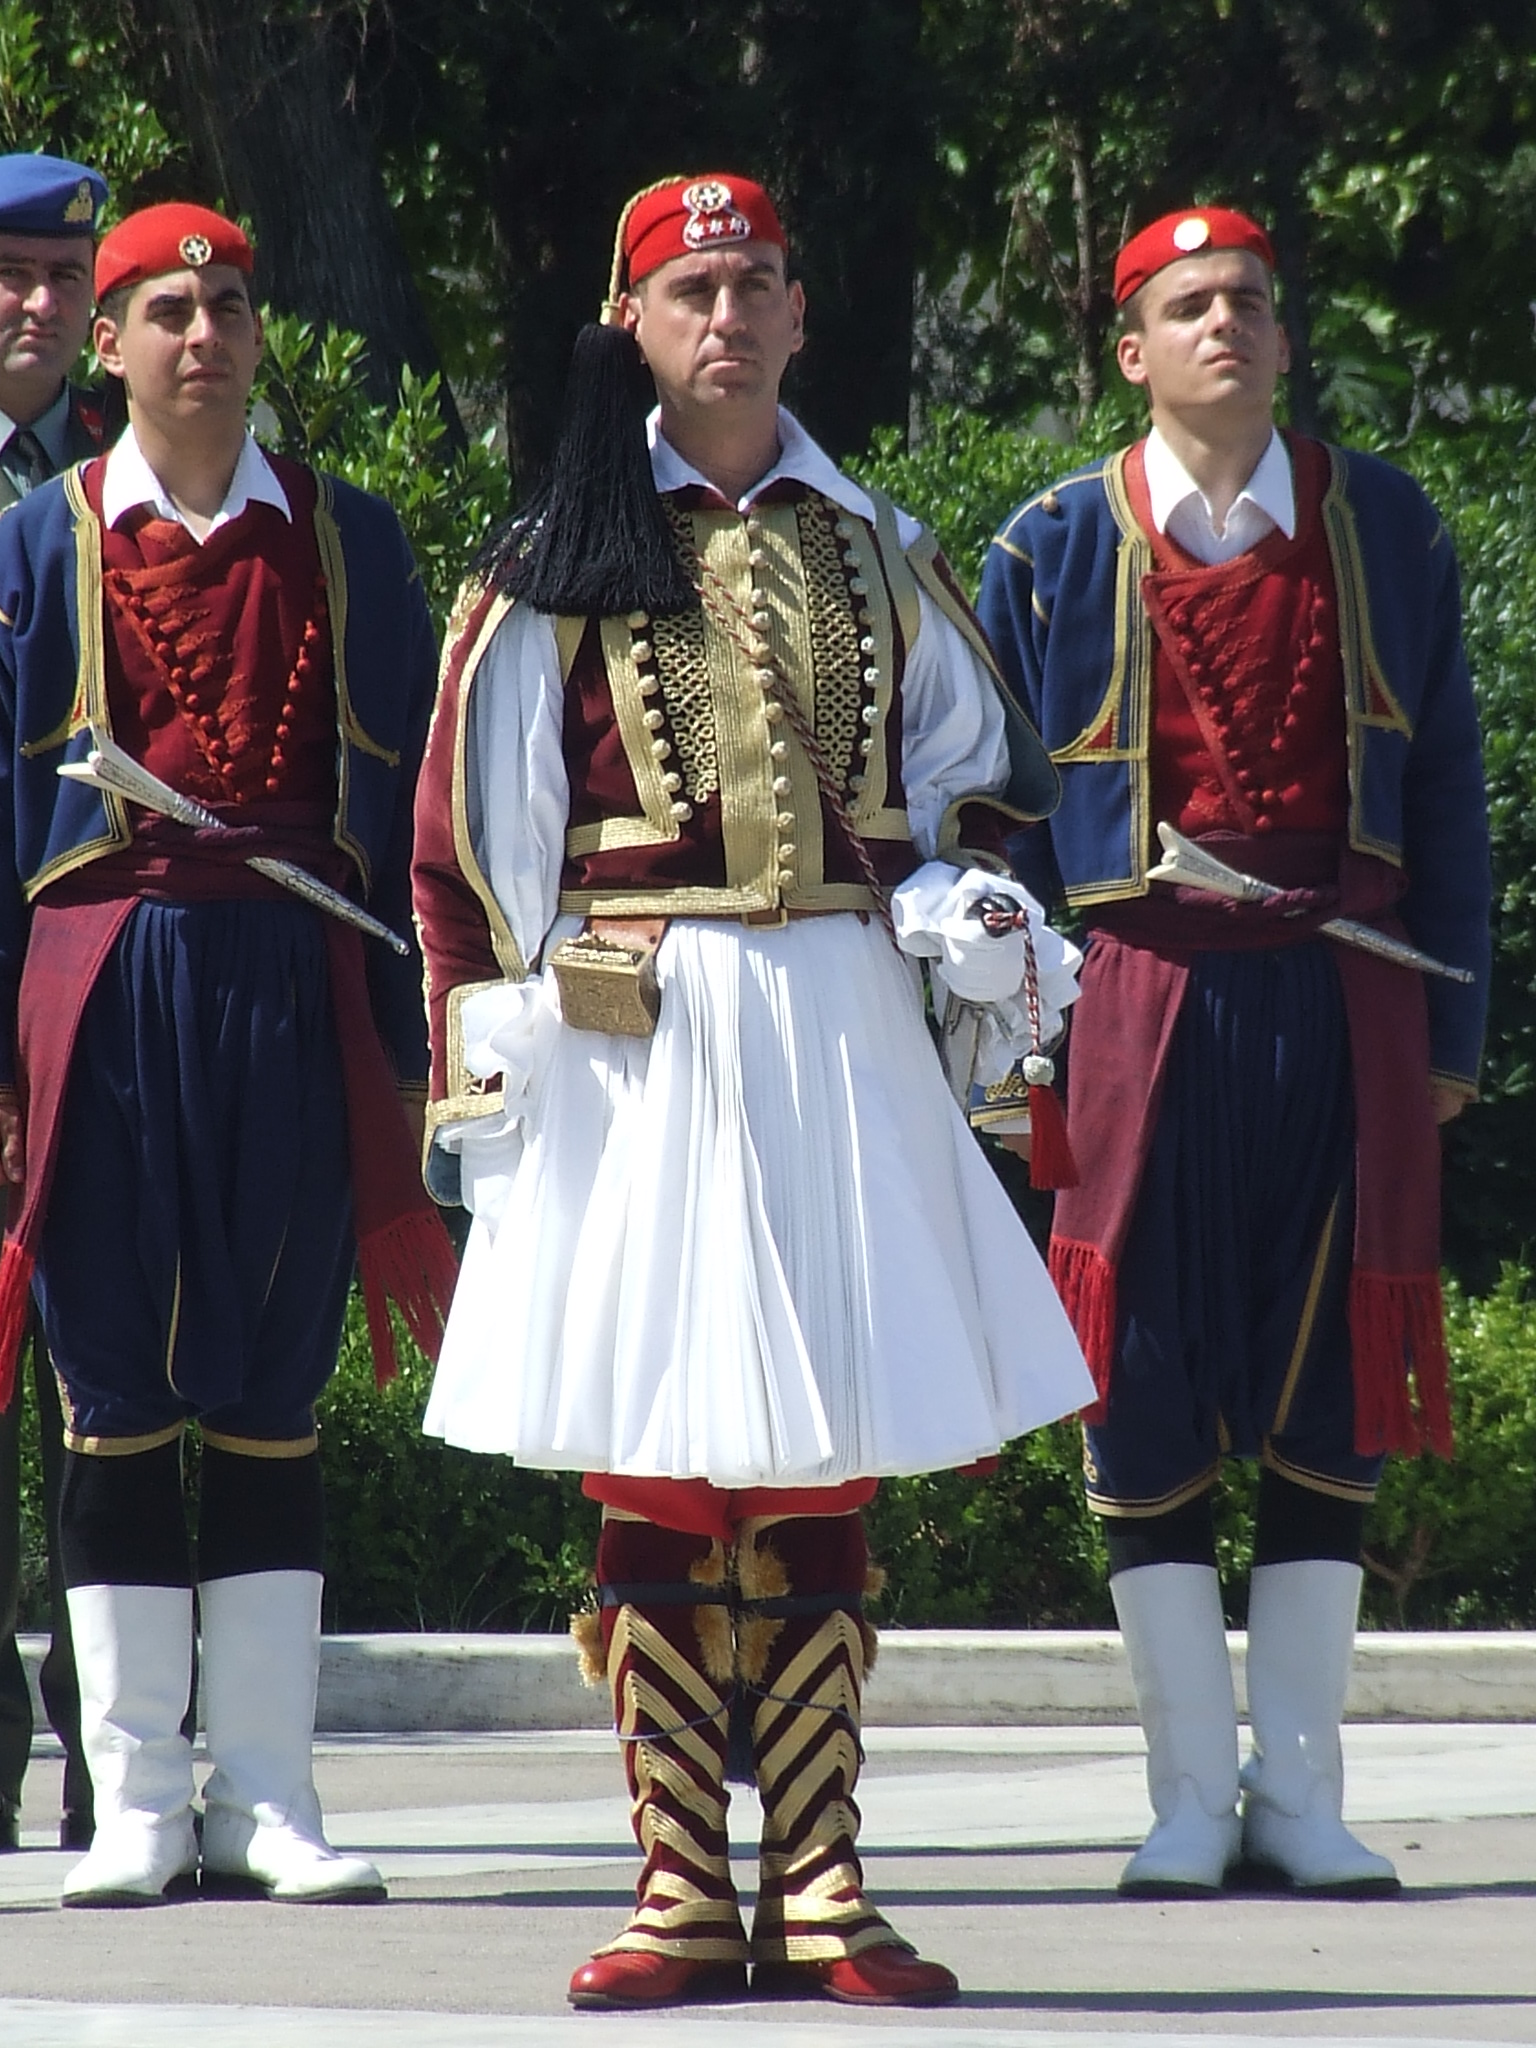 https://upload.wikimedia.org/wikipedia/commons/a/a3/Greek_guard_uniforms_1.jpg